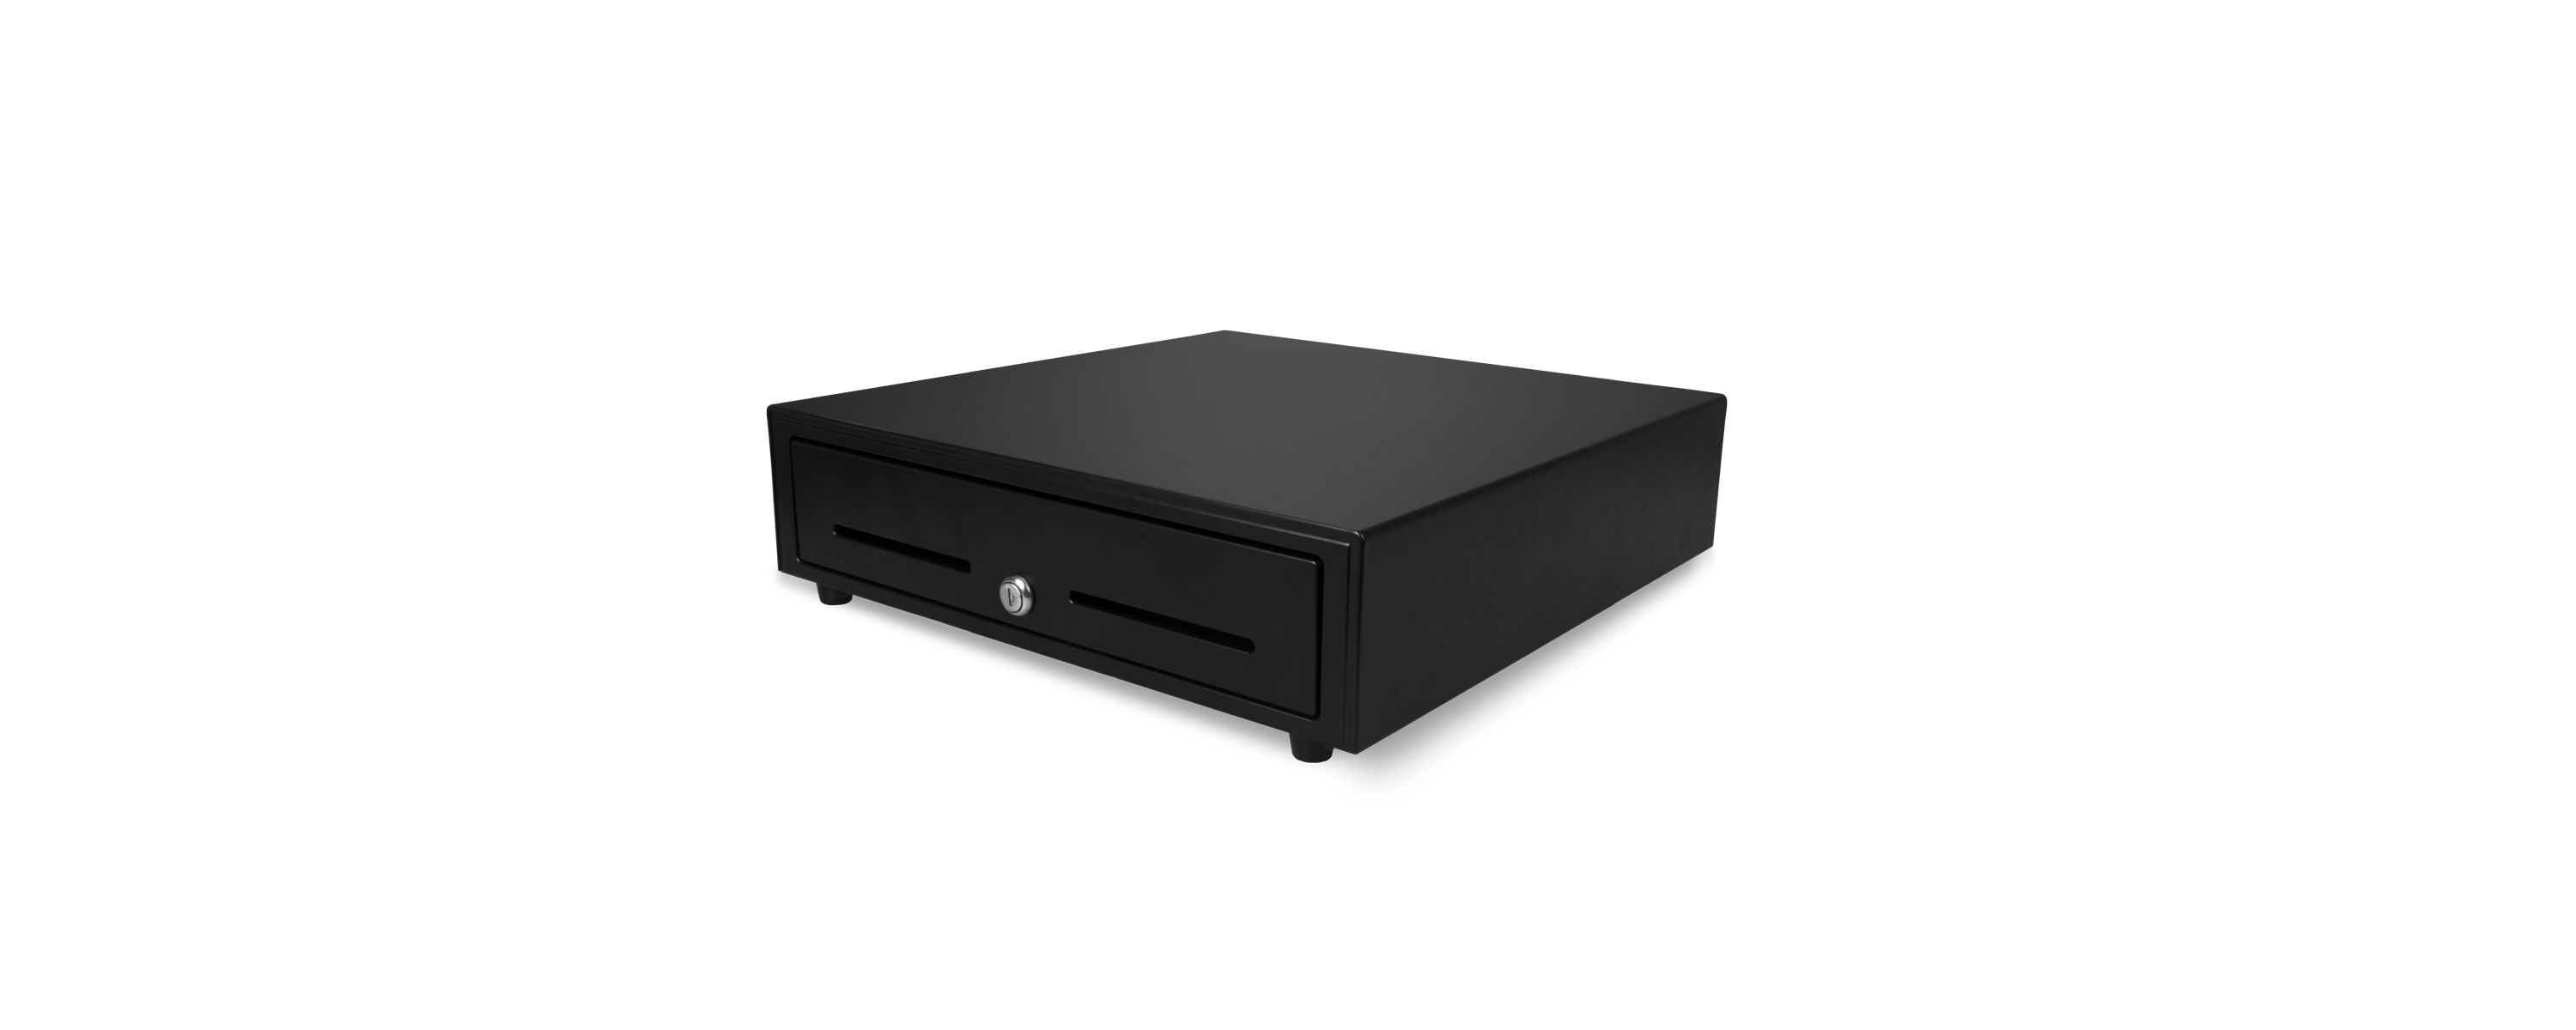 Star-CD3-1616-Cash-Drawer